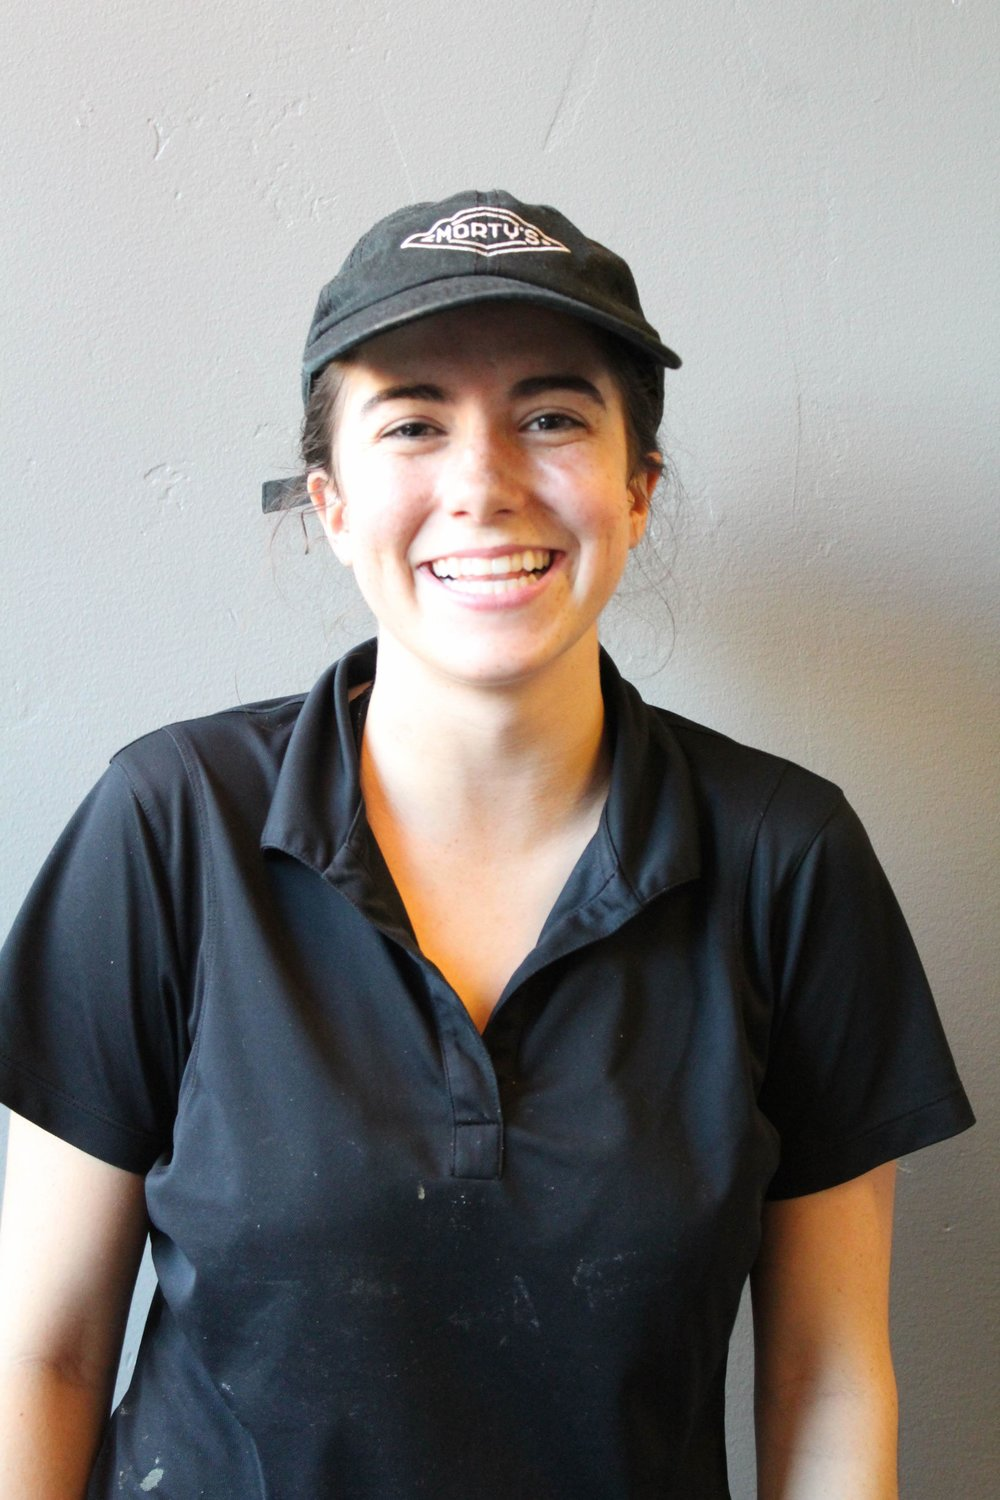 Ashley Bartlett - is from Gilbert, AZ. She moved to Logan to attend Utah State University.She is studying Human Biology and plans to attend Medical School afterwards.She has worked at Morty's Cafe for over a year.Ashley's responsibilities include grill, bringing out food to guests, being an example for the team as Team Lead and customer service.Her favorite thing on the menu is the Turkey Bacon RanchAshley has a pet Australian Shepherd back at home in Arizona.